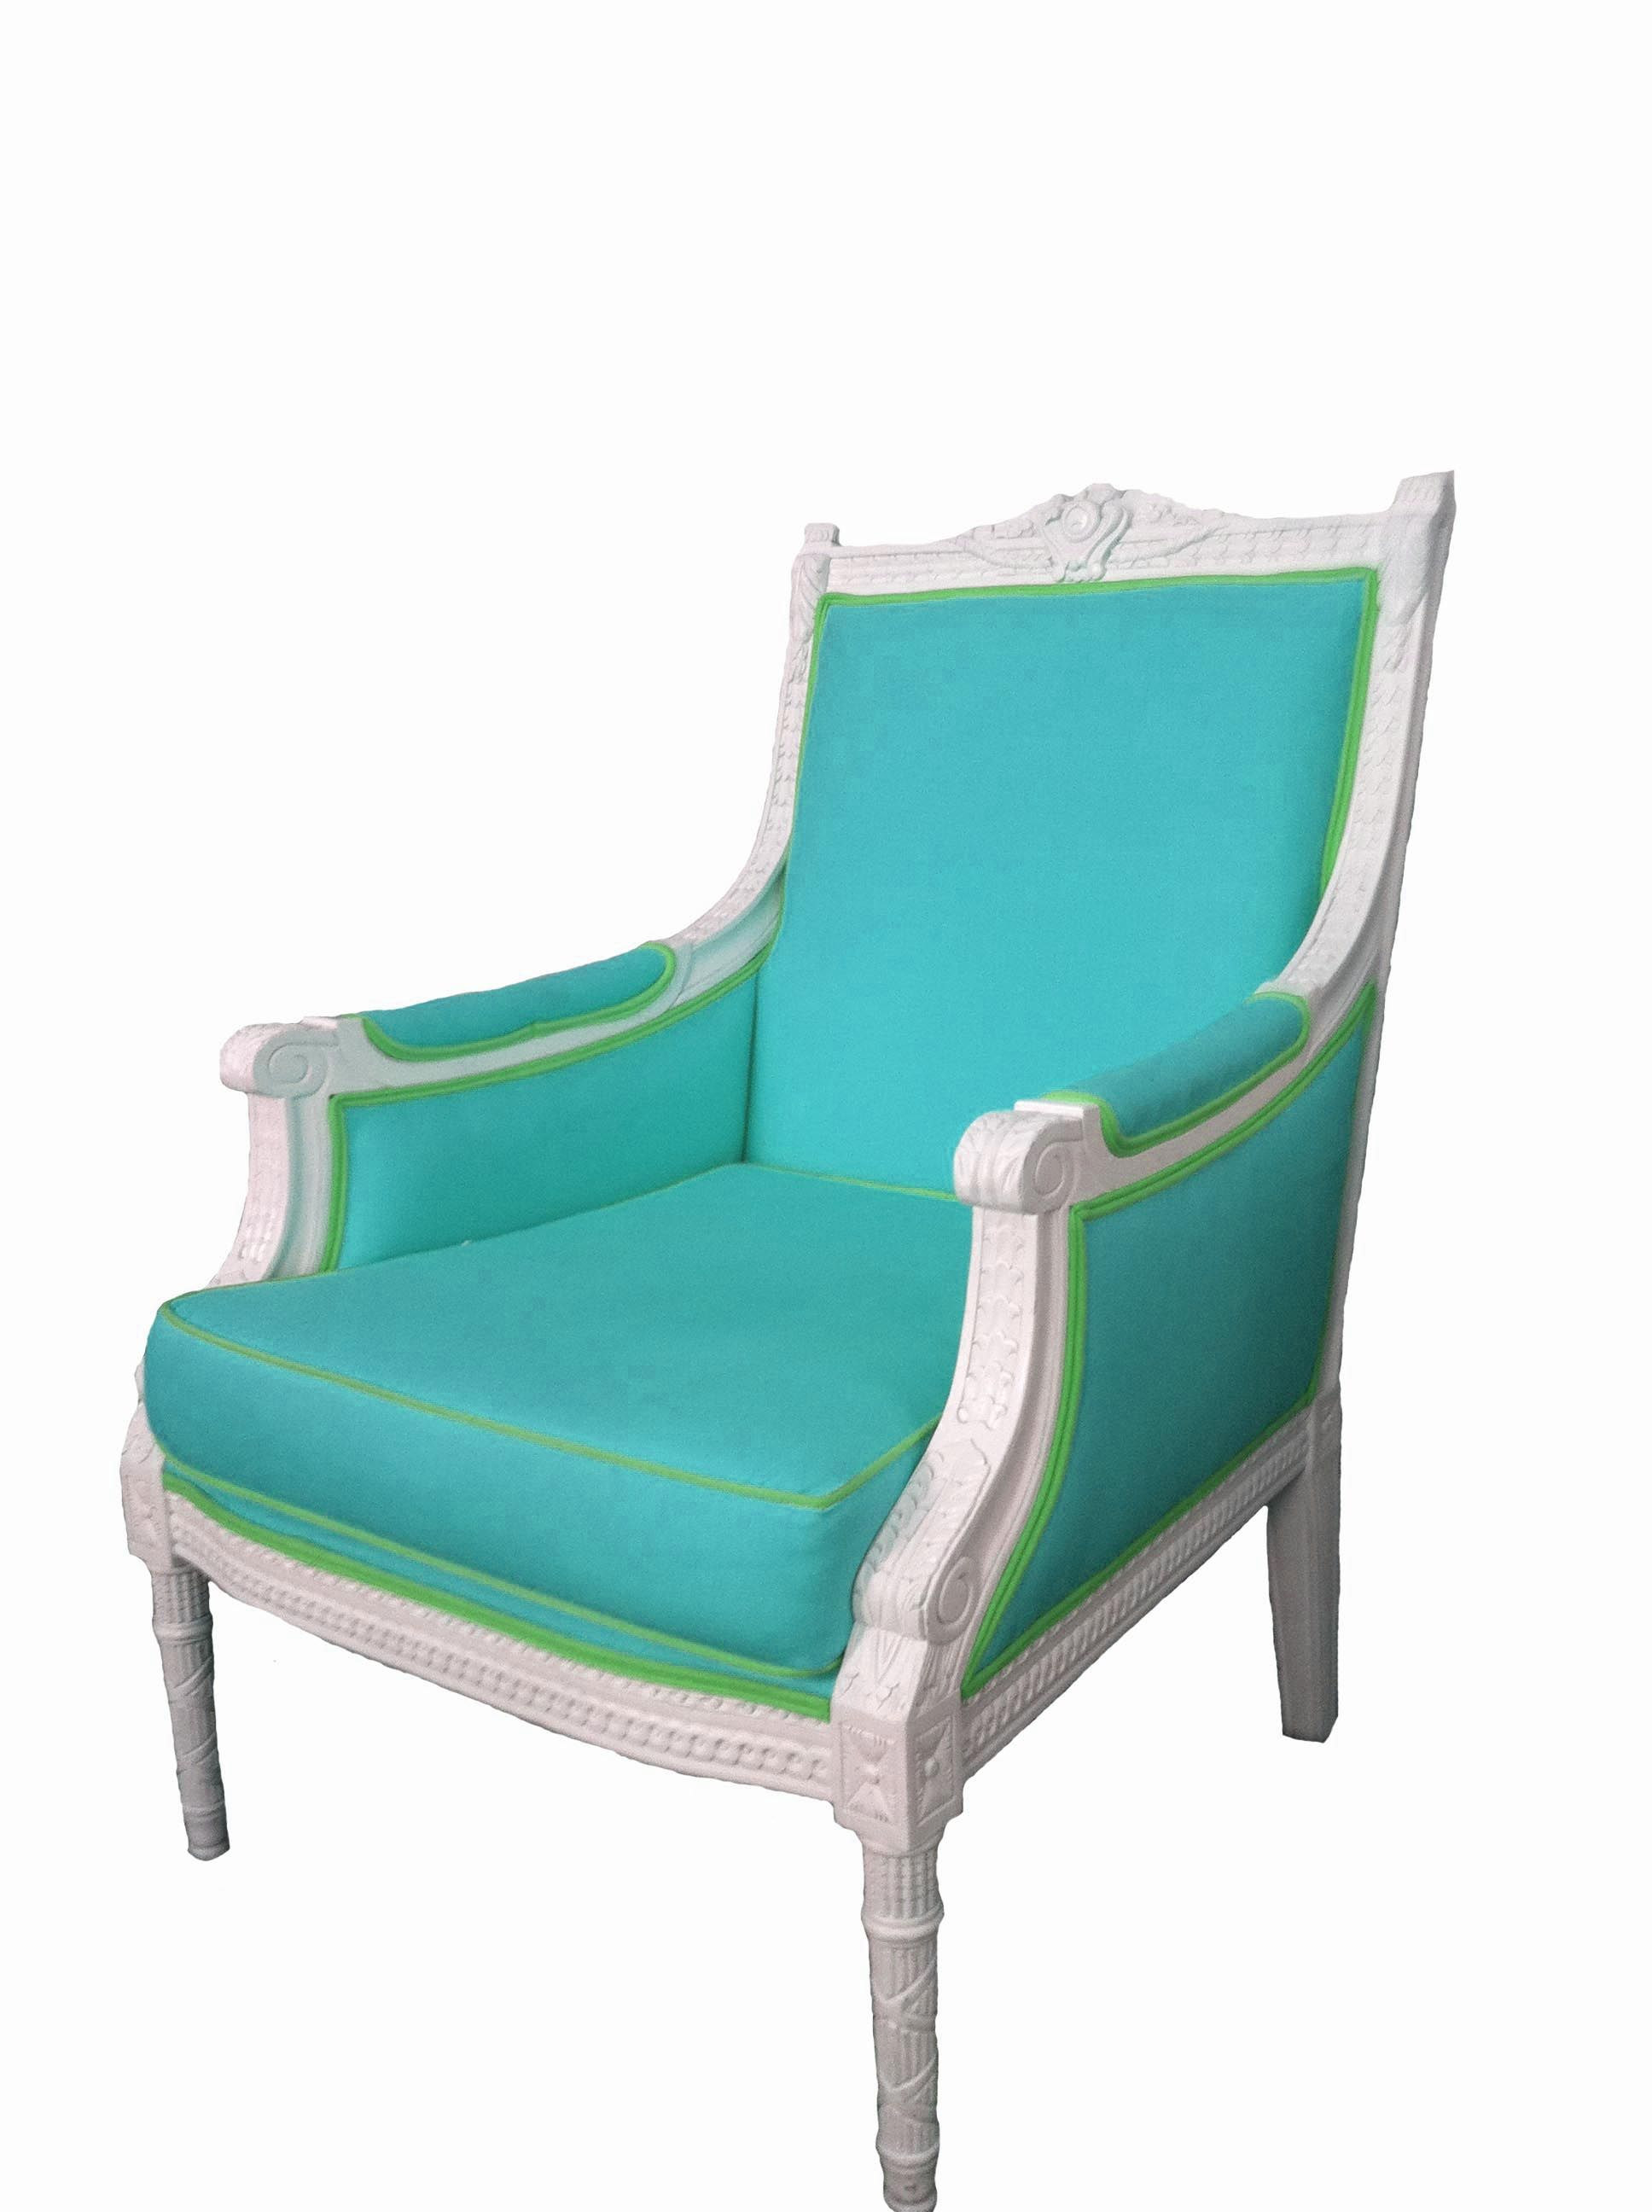 Turquoise Side Chair Turquoise Chair Furnishings Pinterest Turquoise